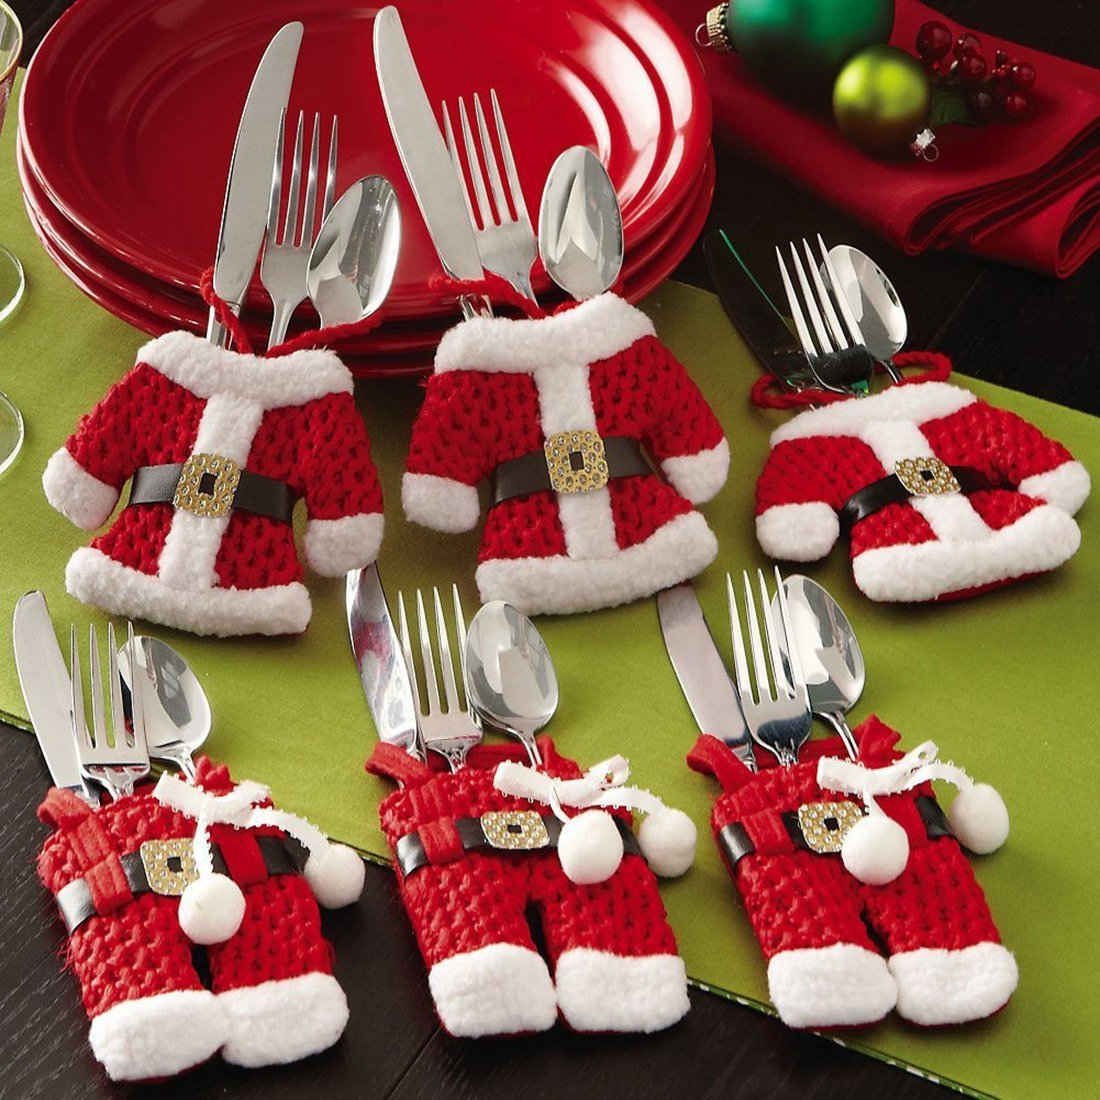 12 CellElection Santa Suit Christmas Silverware Holder Pockets Red